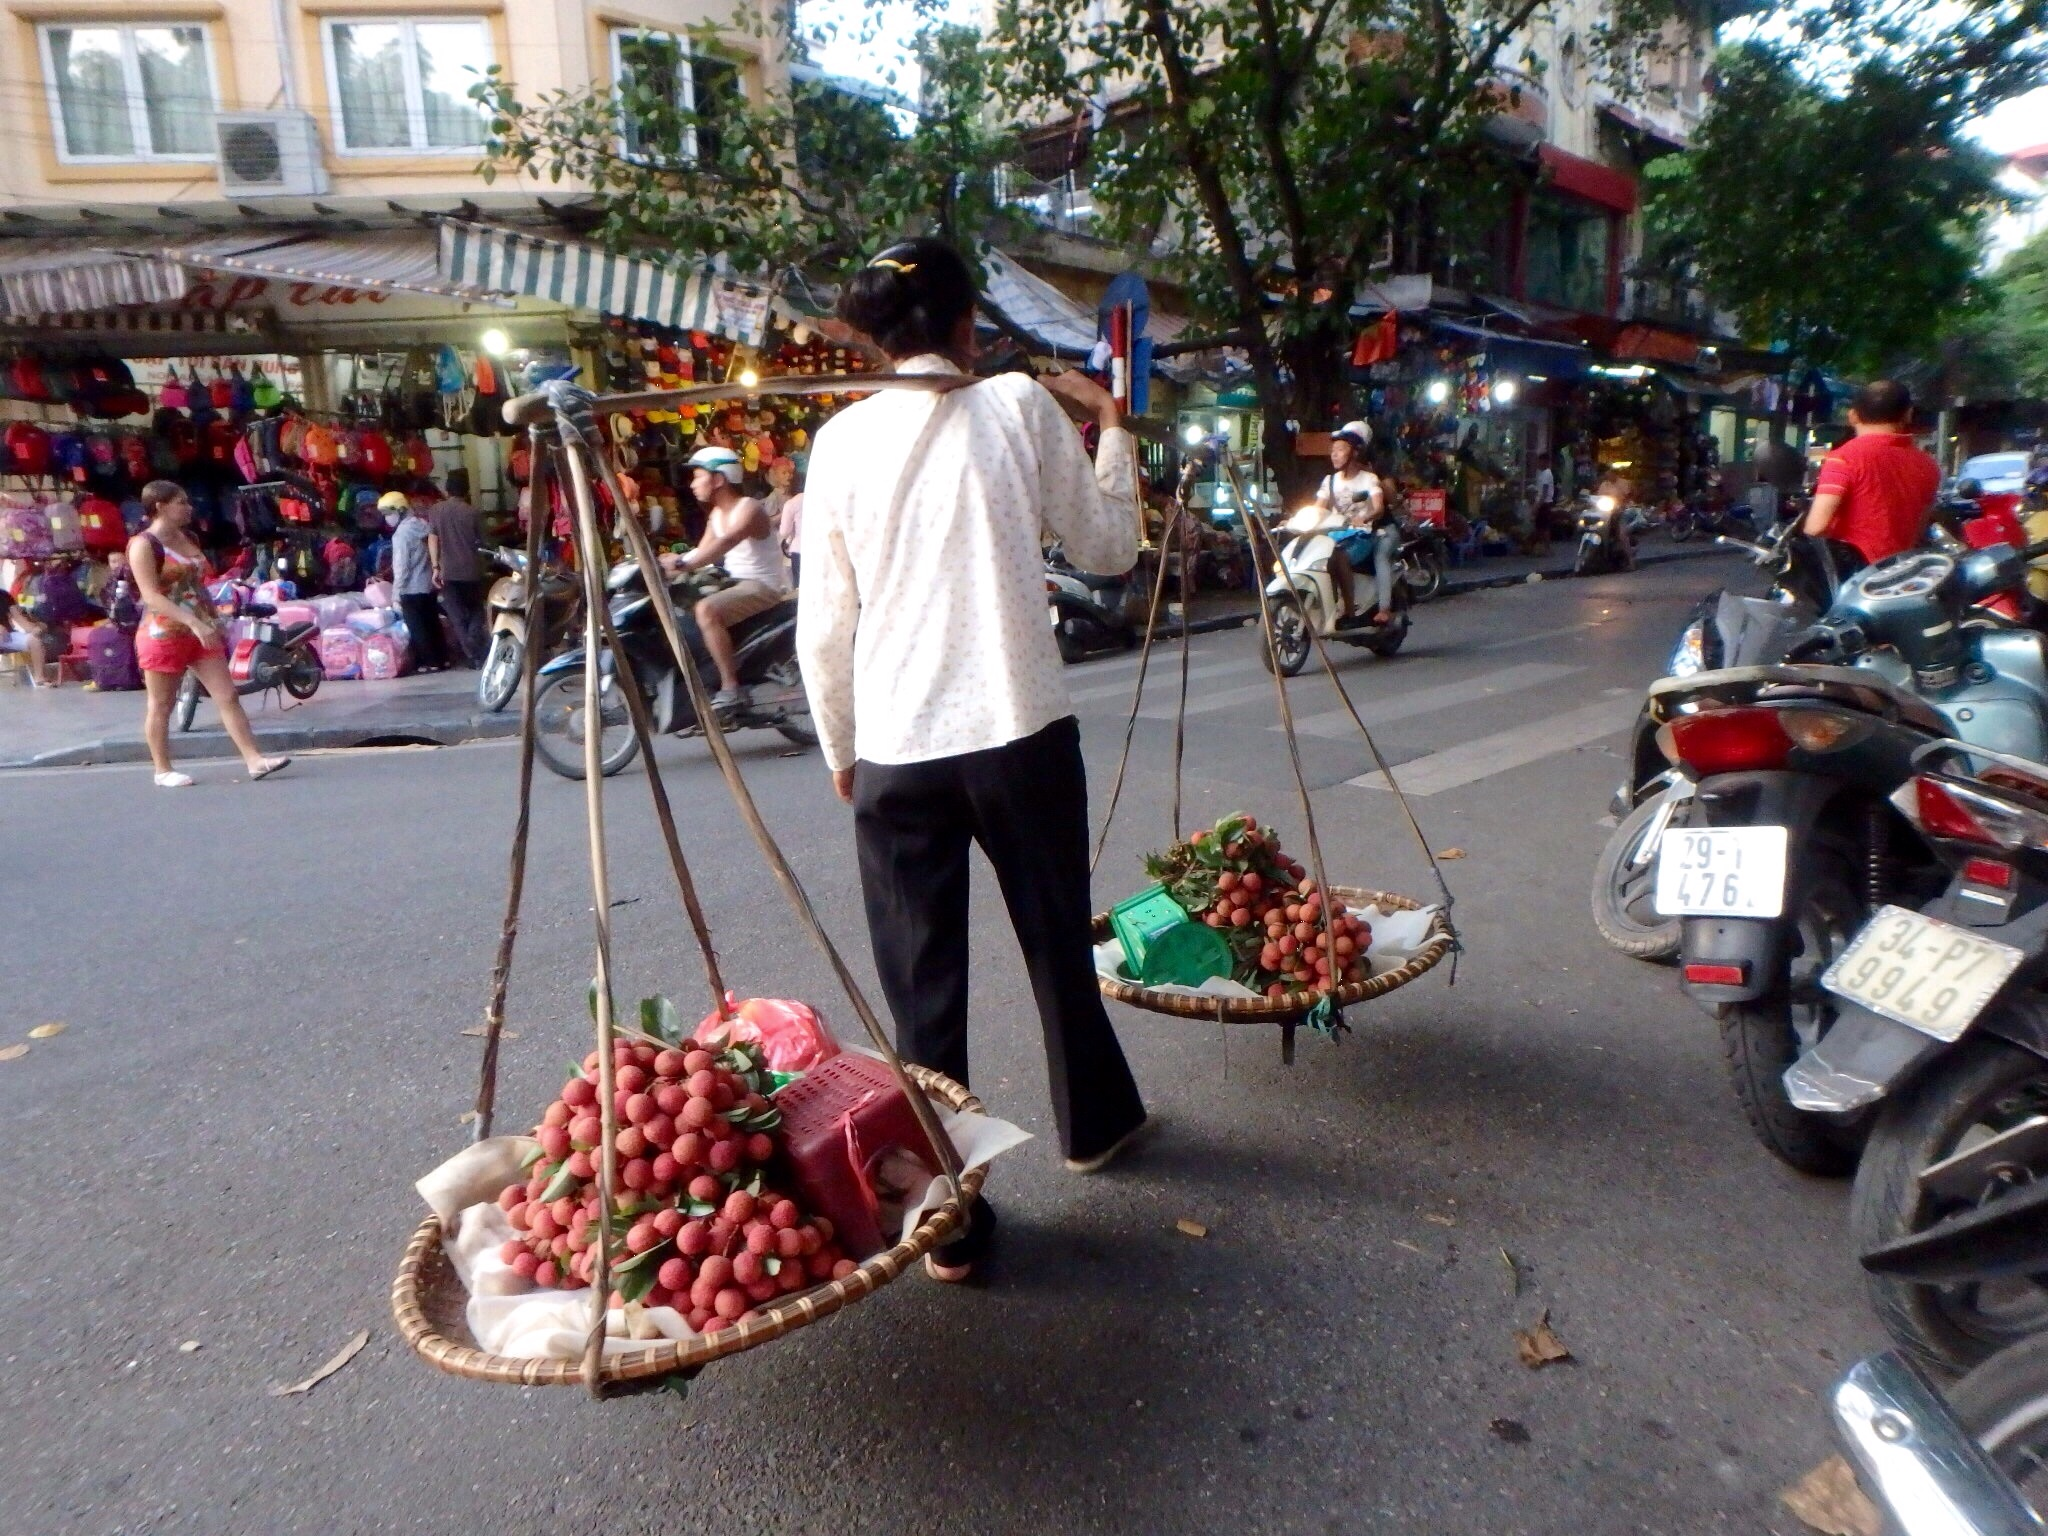 A typical day includes many street vendors selling fruit and many motorbikes crowding the streets.